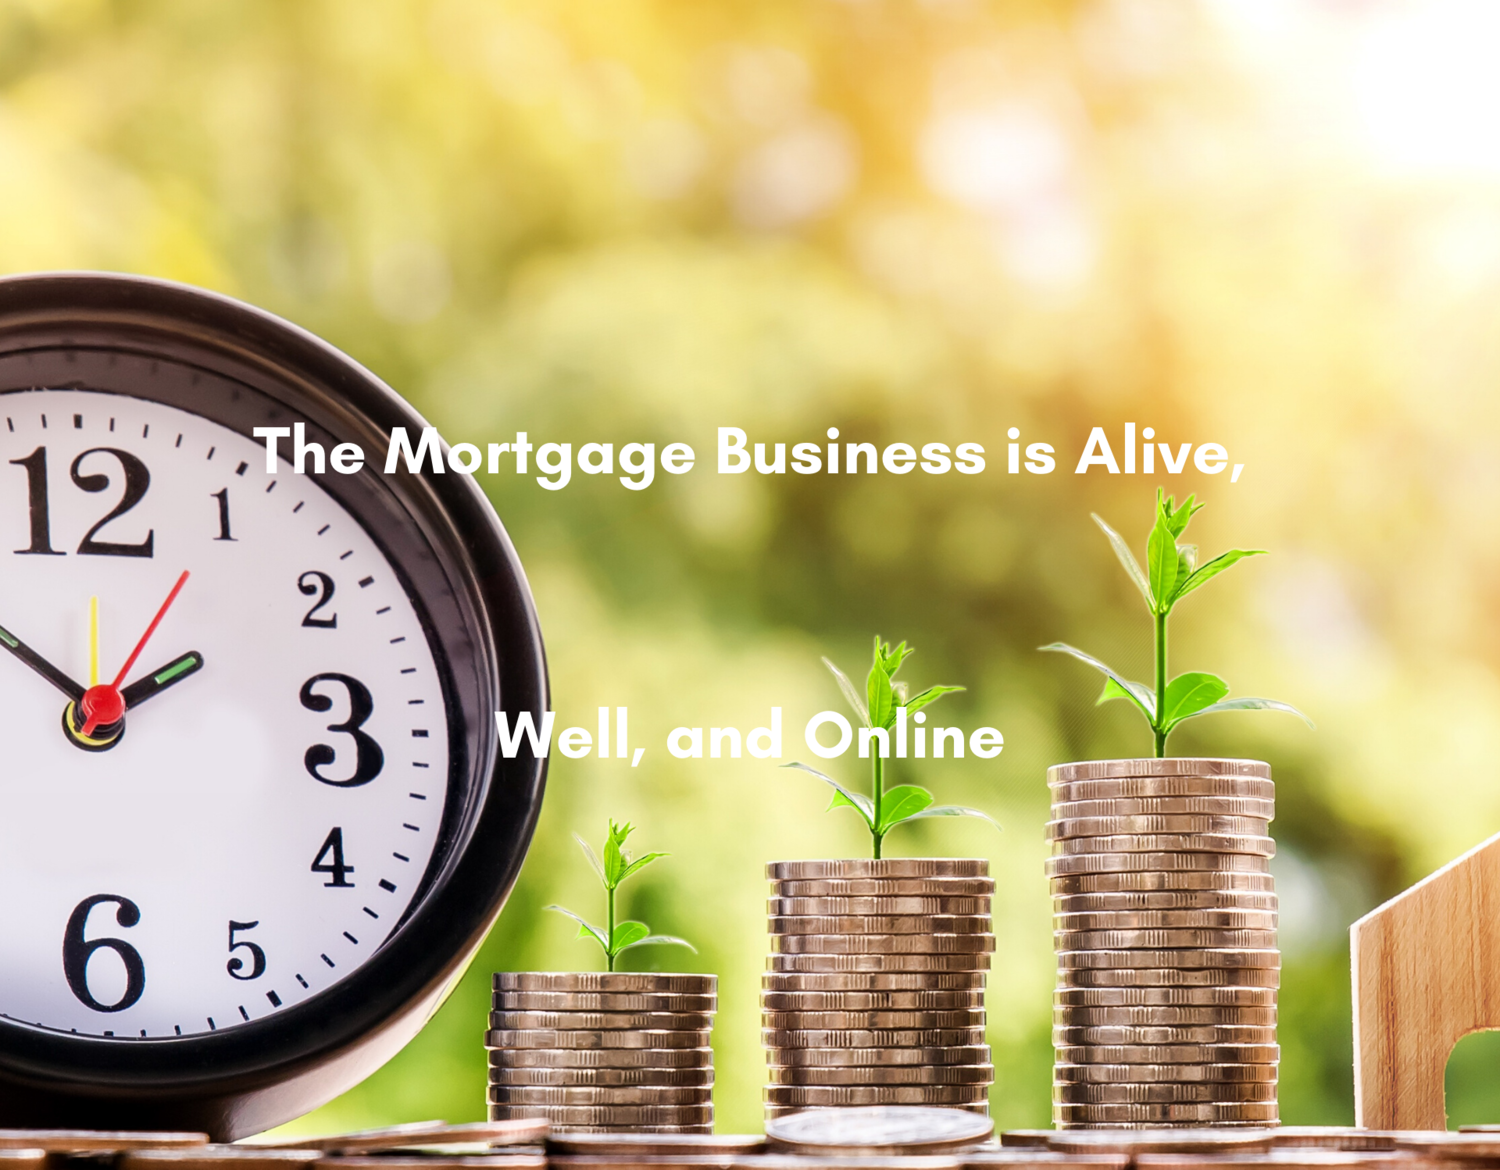 The Mortgage Business is Alive, Well, and Online